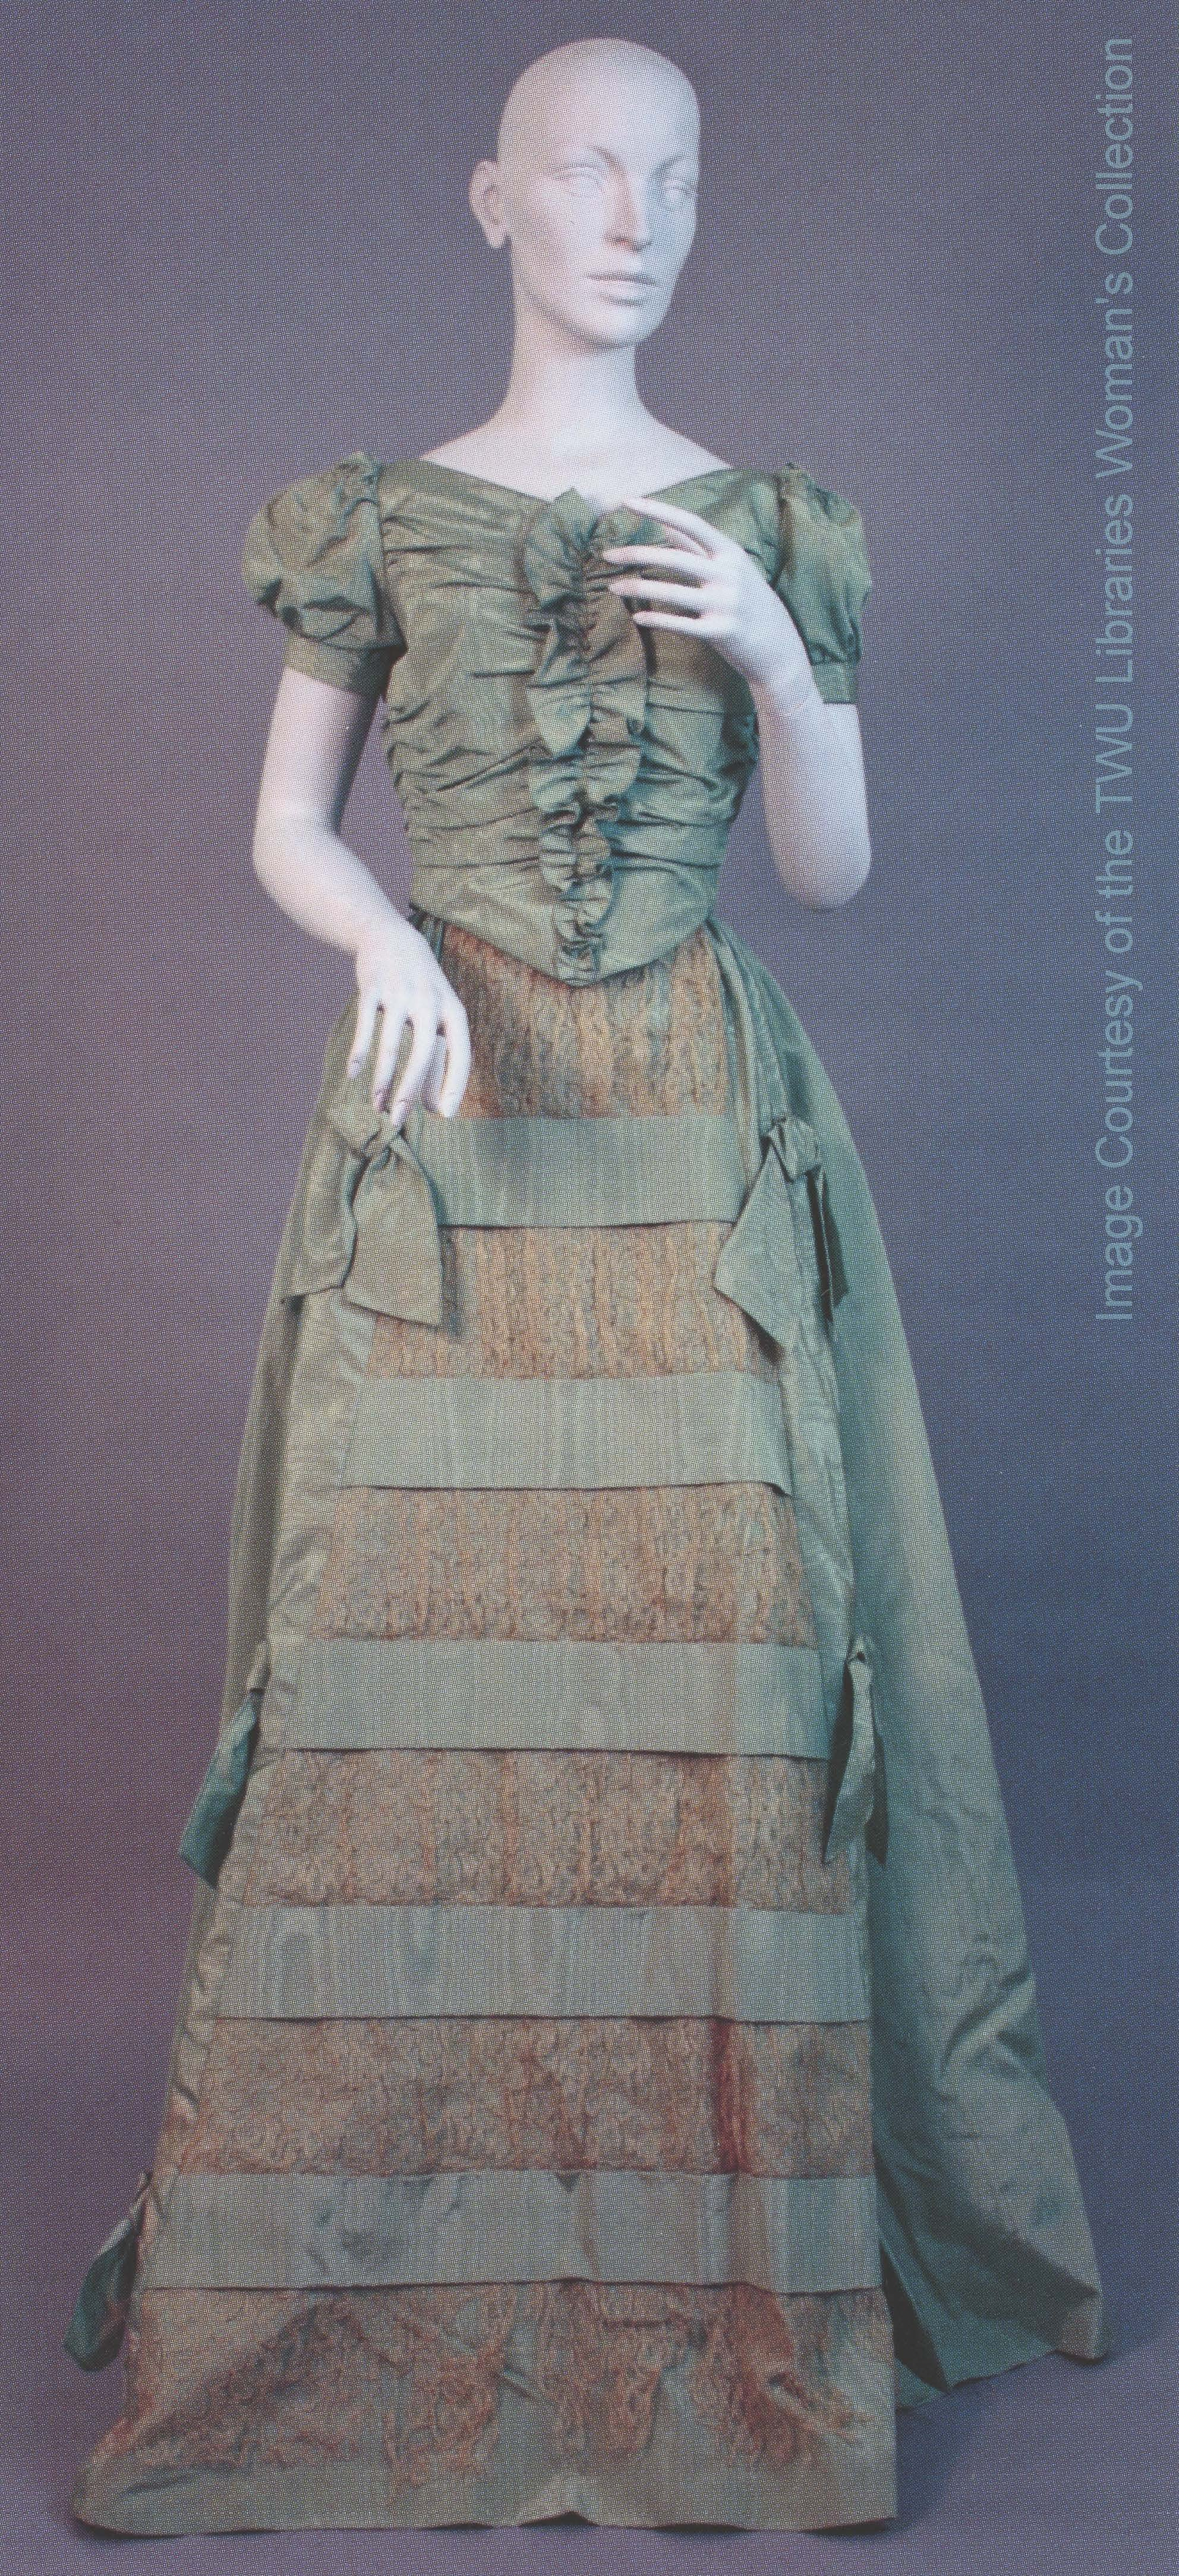 Mary Smith McCrory Jones gown (1844-46) presented to represent the fashion era of her time, and features a tight bodice, puffed sleeves, and full skirt. Photo courtesy of the Woman's Collection, TWU.